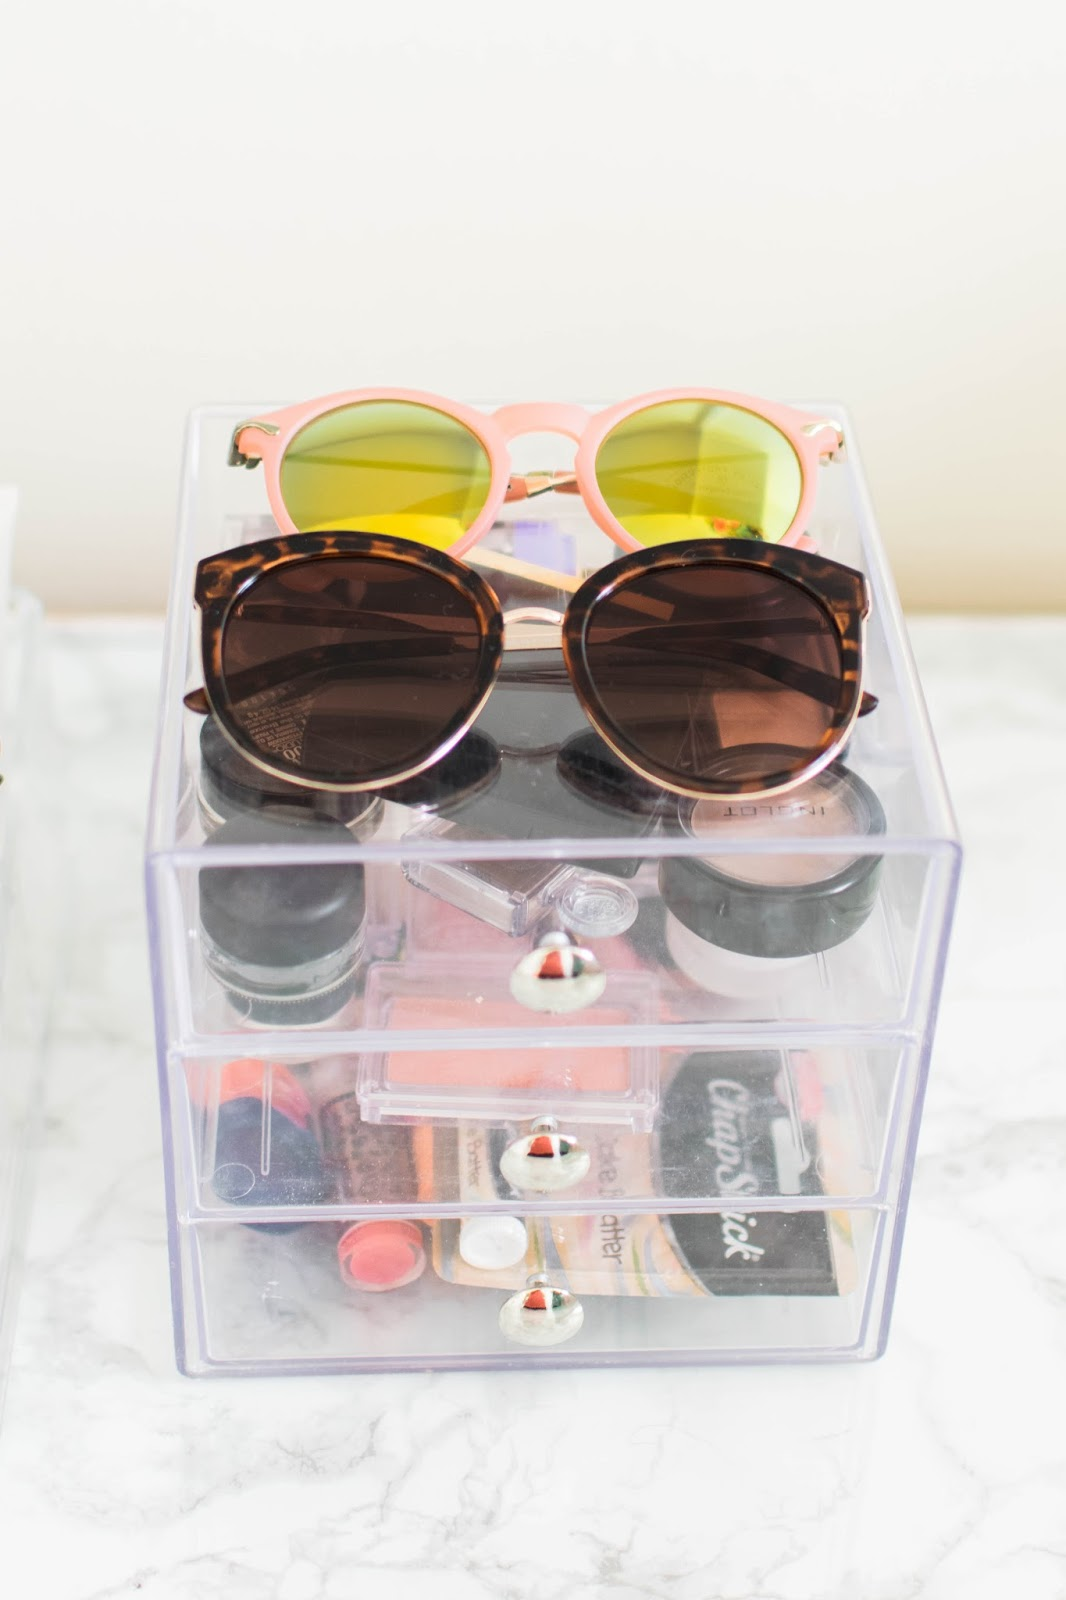 Dorm Organization Ideas for Makeup - TheBellaInsider.com